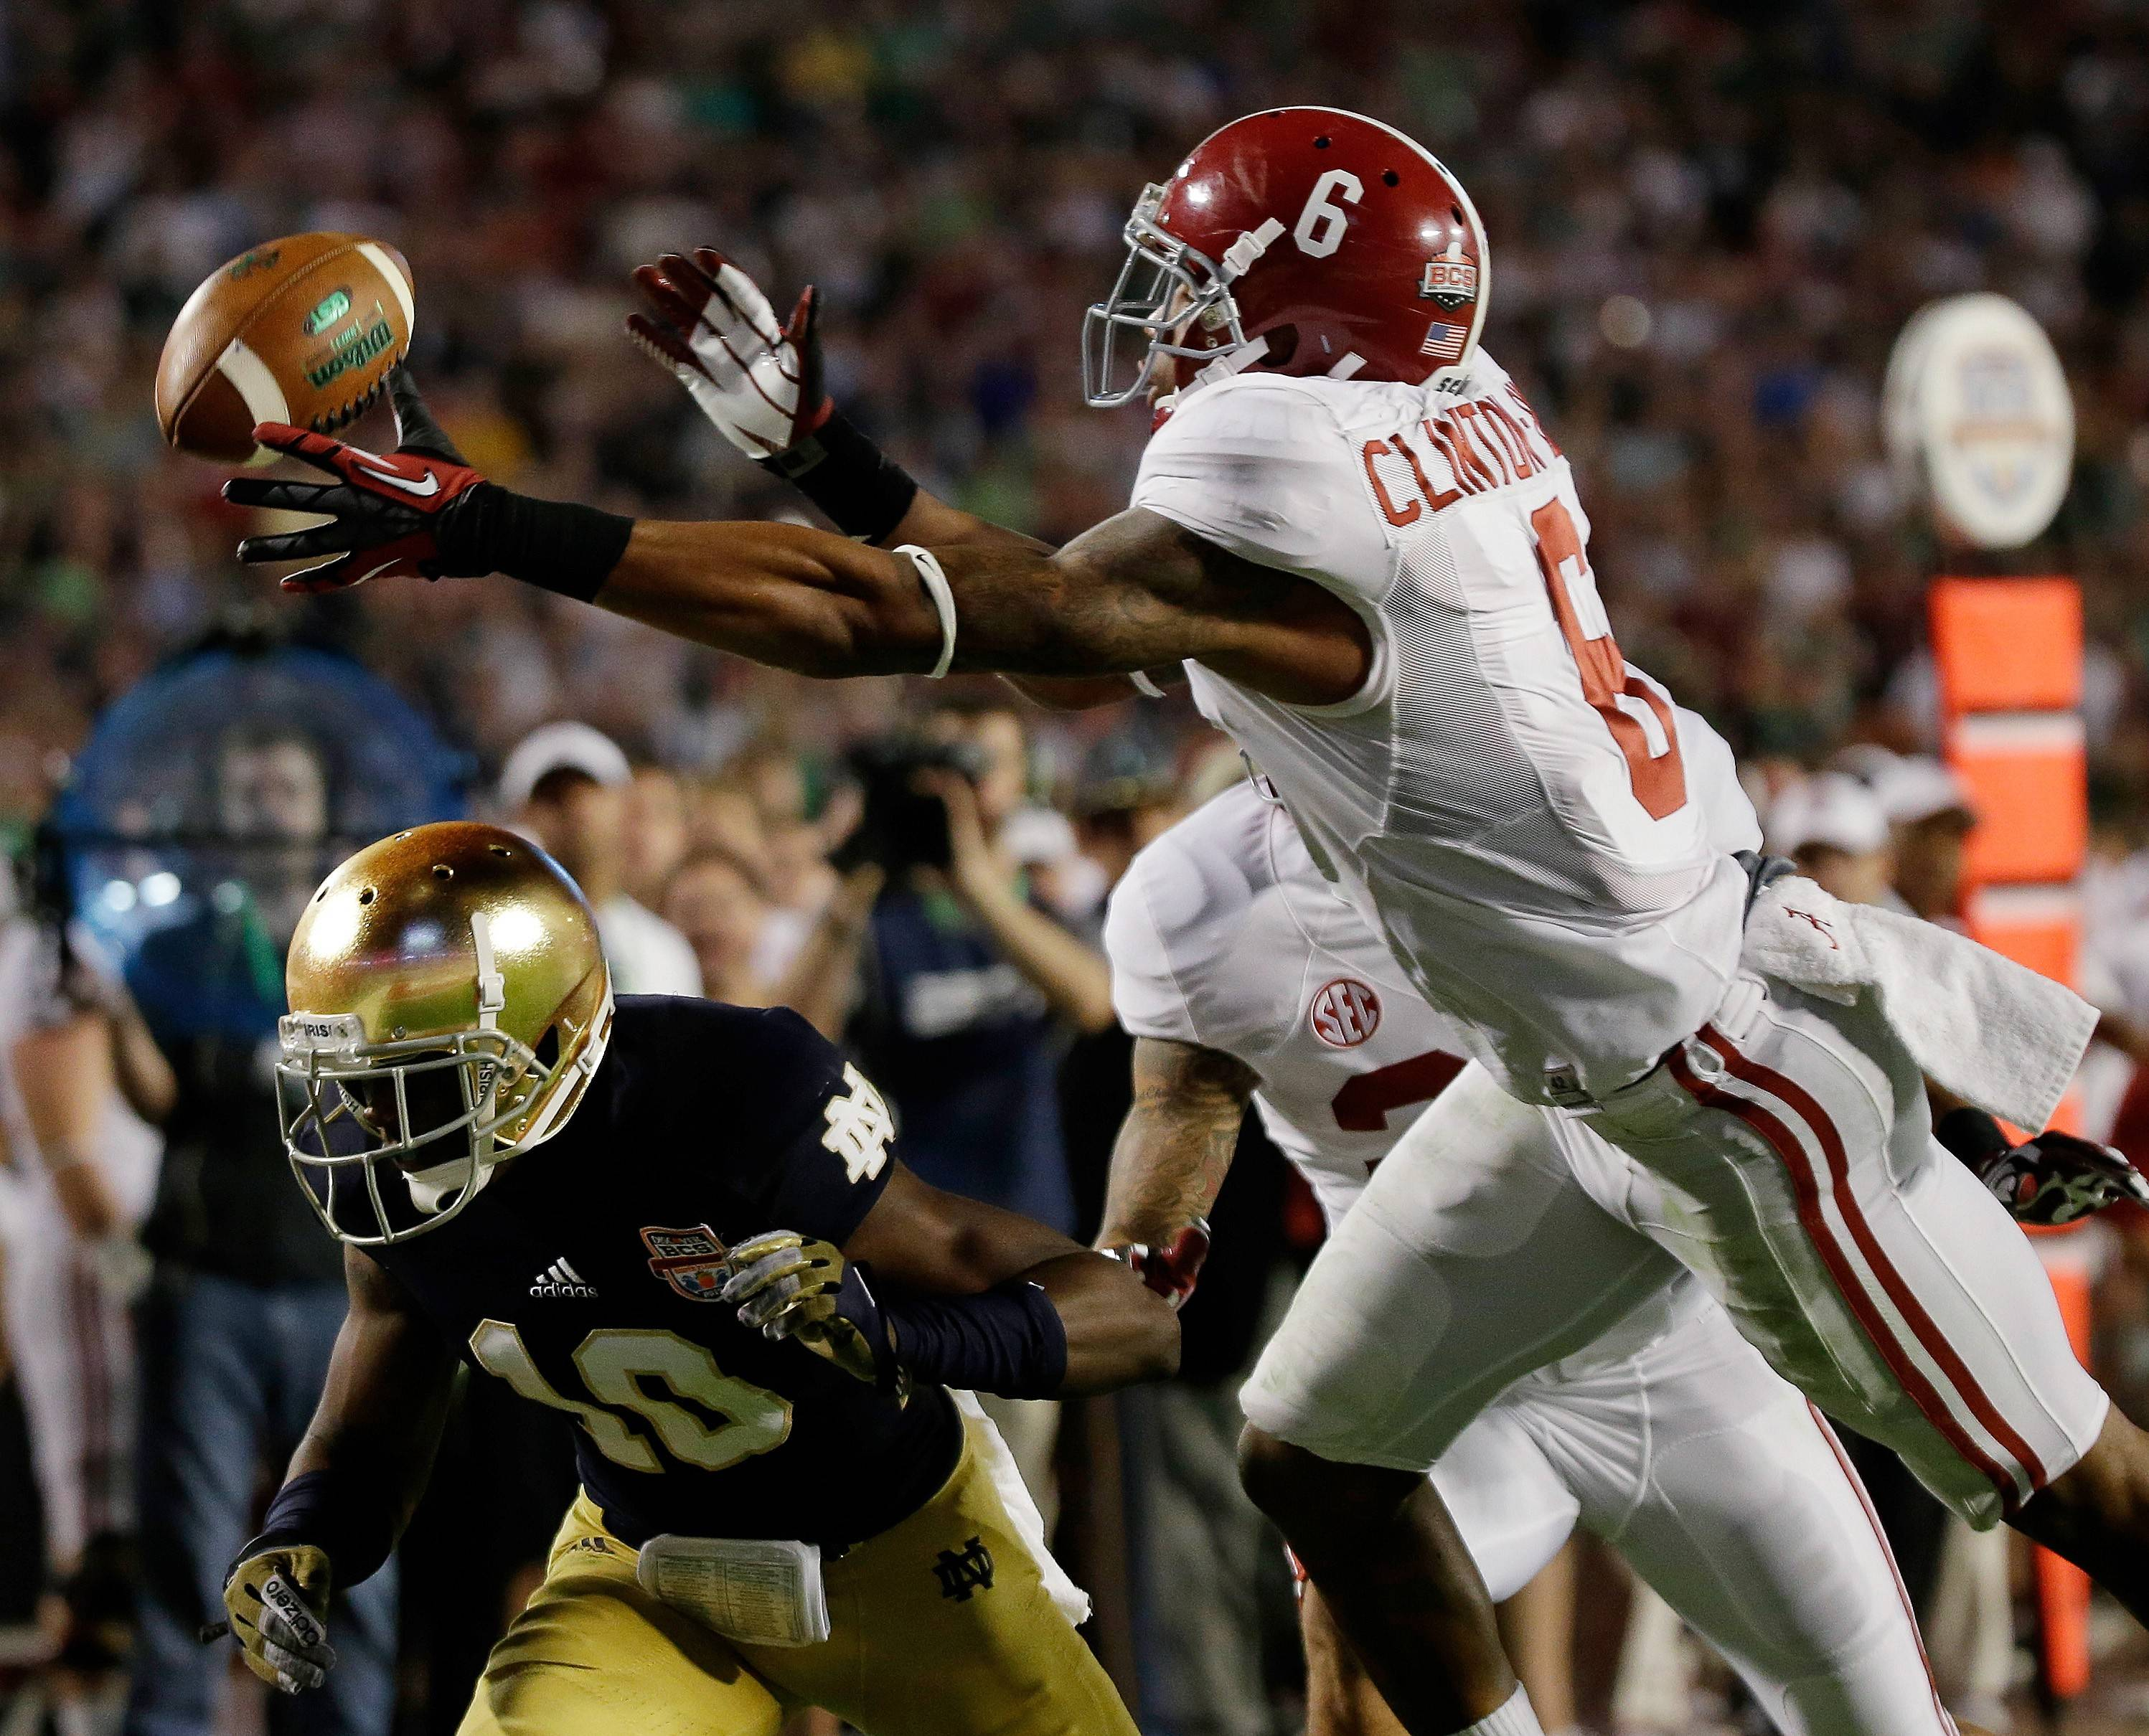 Alabama's Ha'Sean Clinton-Dix (6) intercepts a pass over Notre Dame's DaVaris Daniels (10) during the second half of the BCS National Championship college football game Monday, Jan. 7, 2013. Clinton-Dix is one of only a handful of impact safties available in this year's draft.